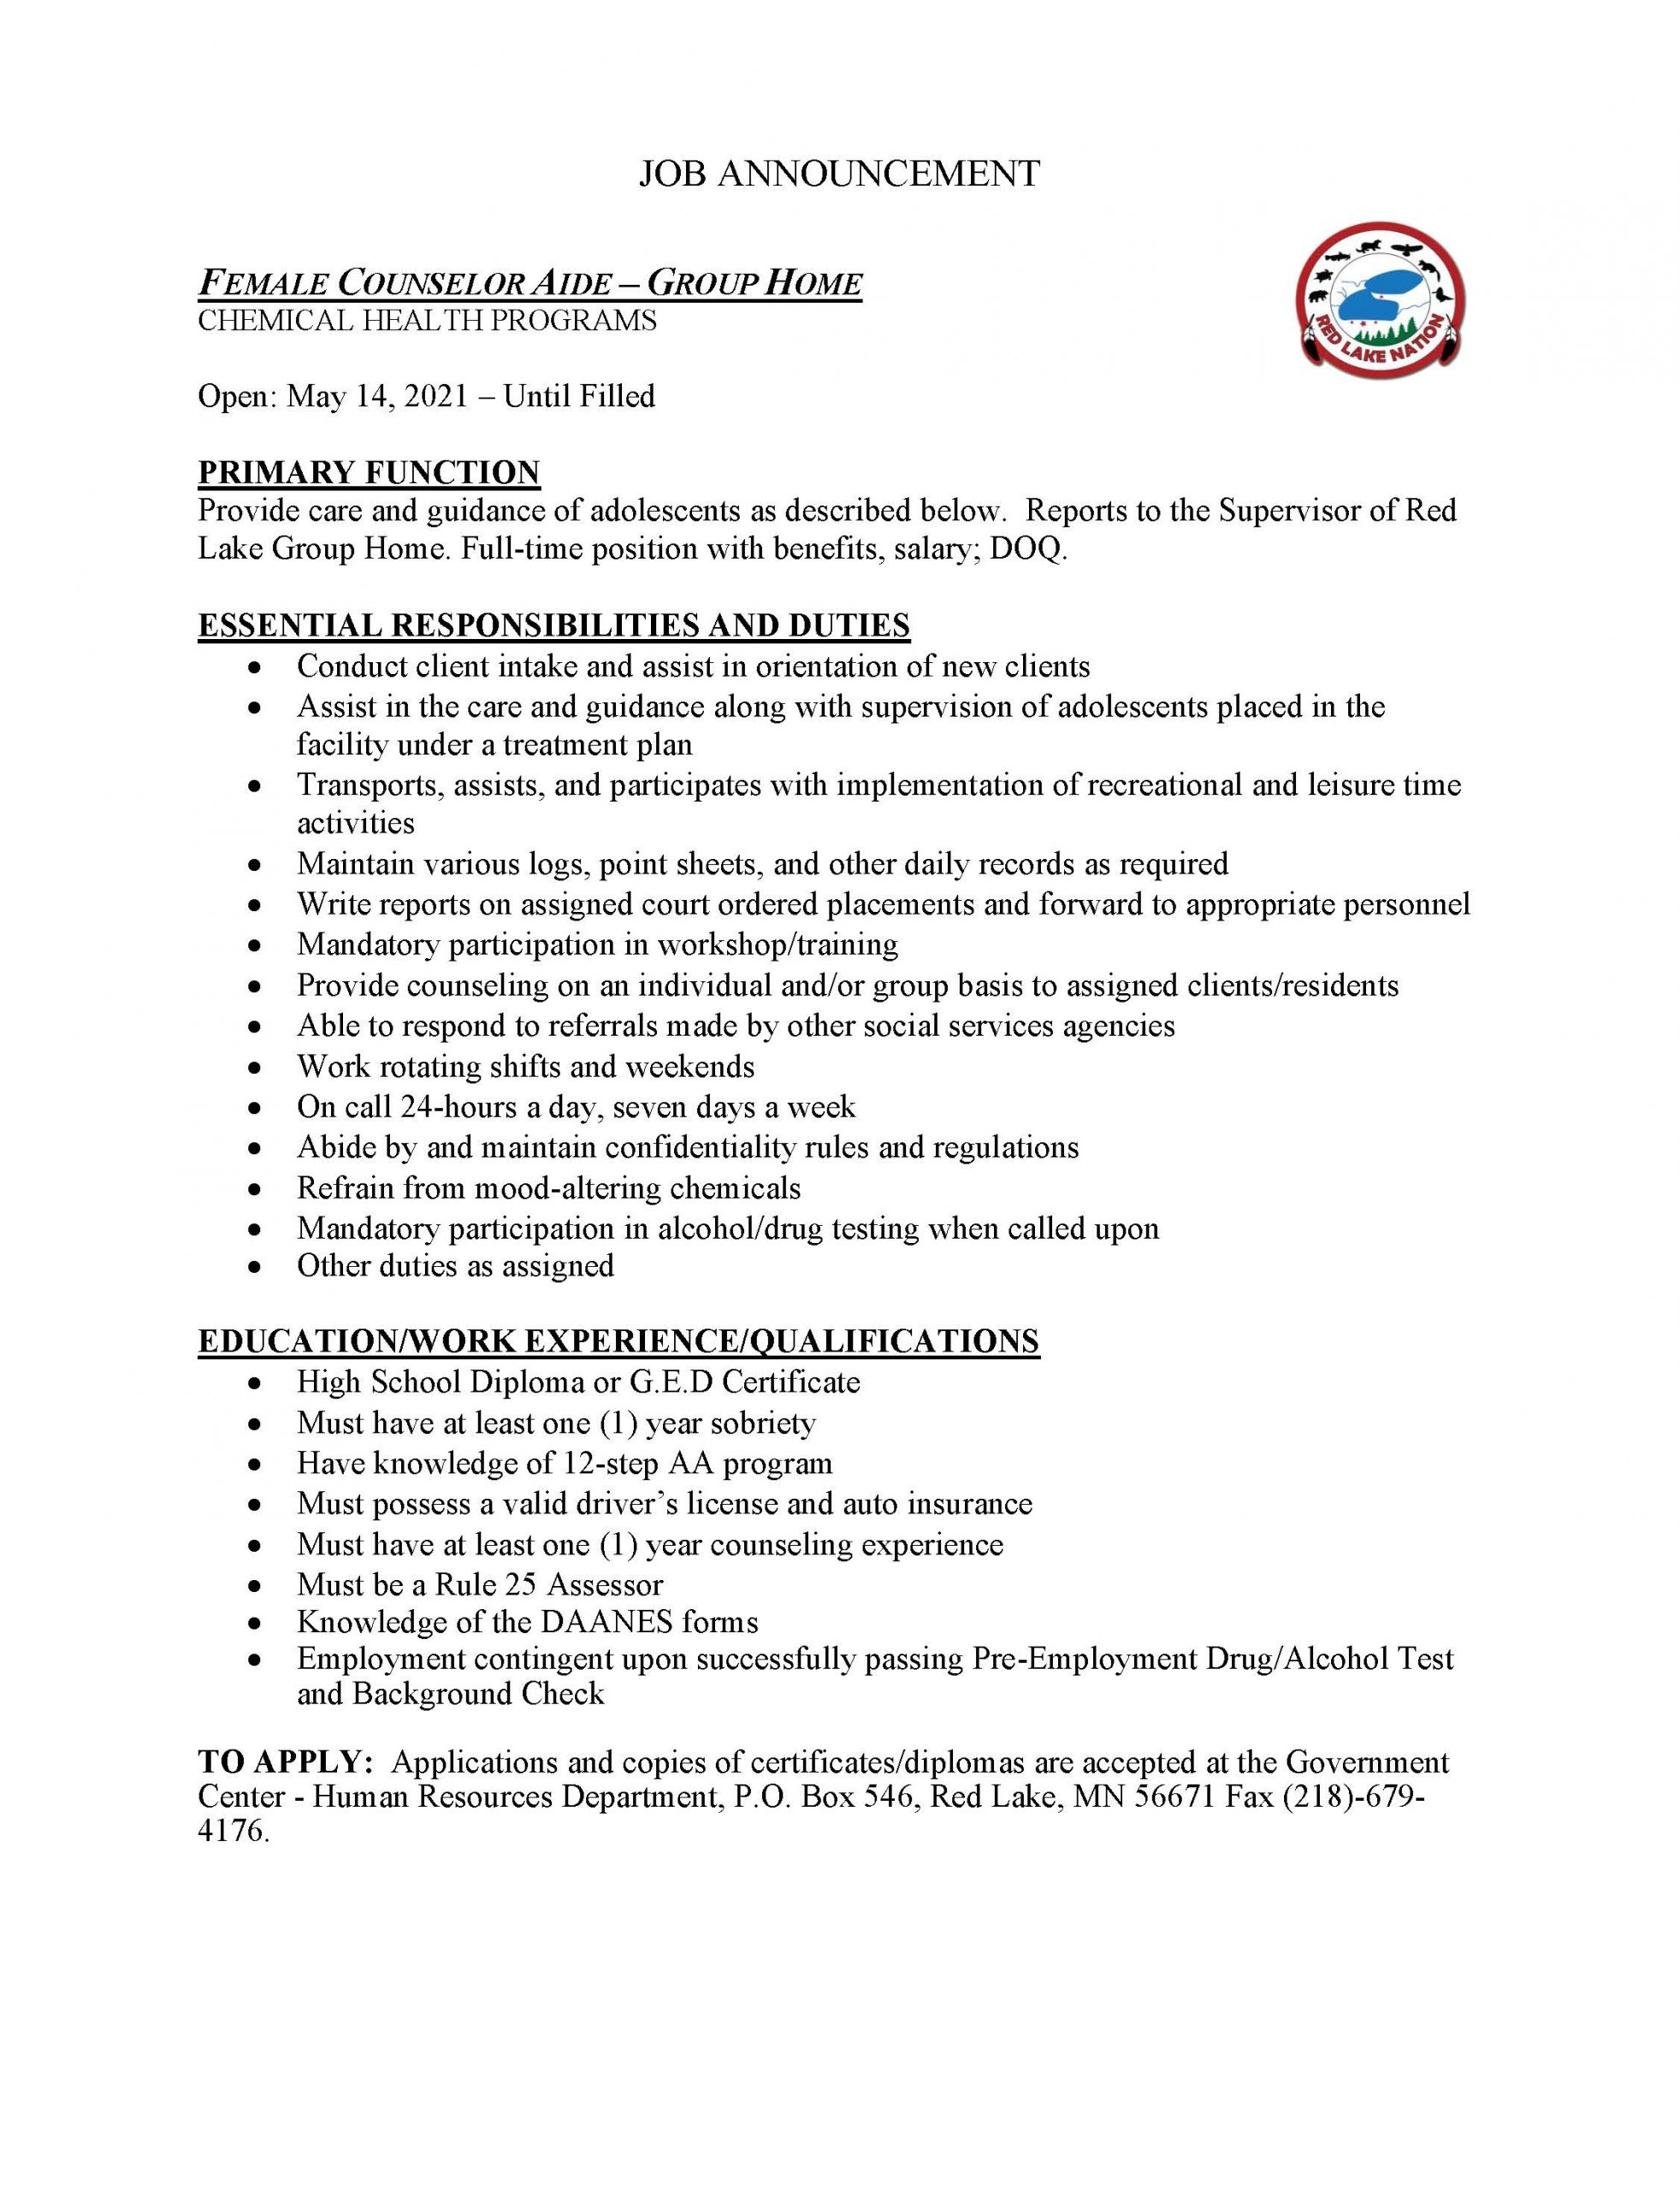 Female Counselor Aide-Group Home-Chemical Health Job Posting-5-13-2021